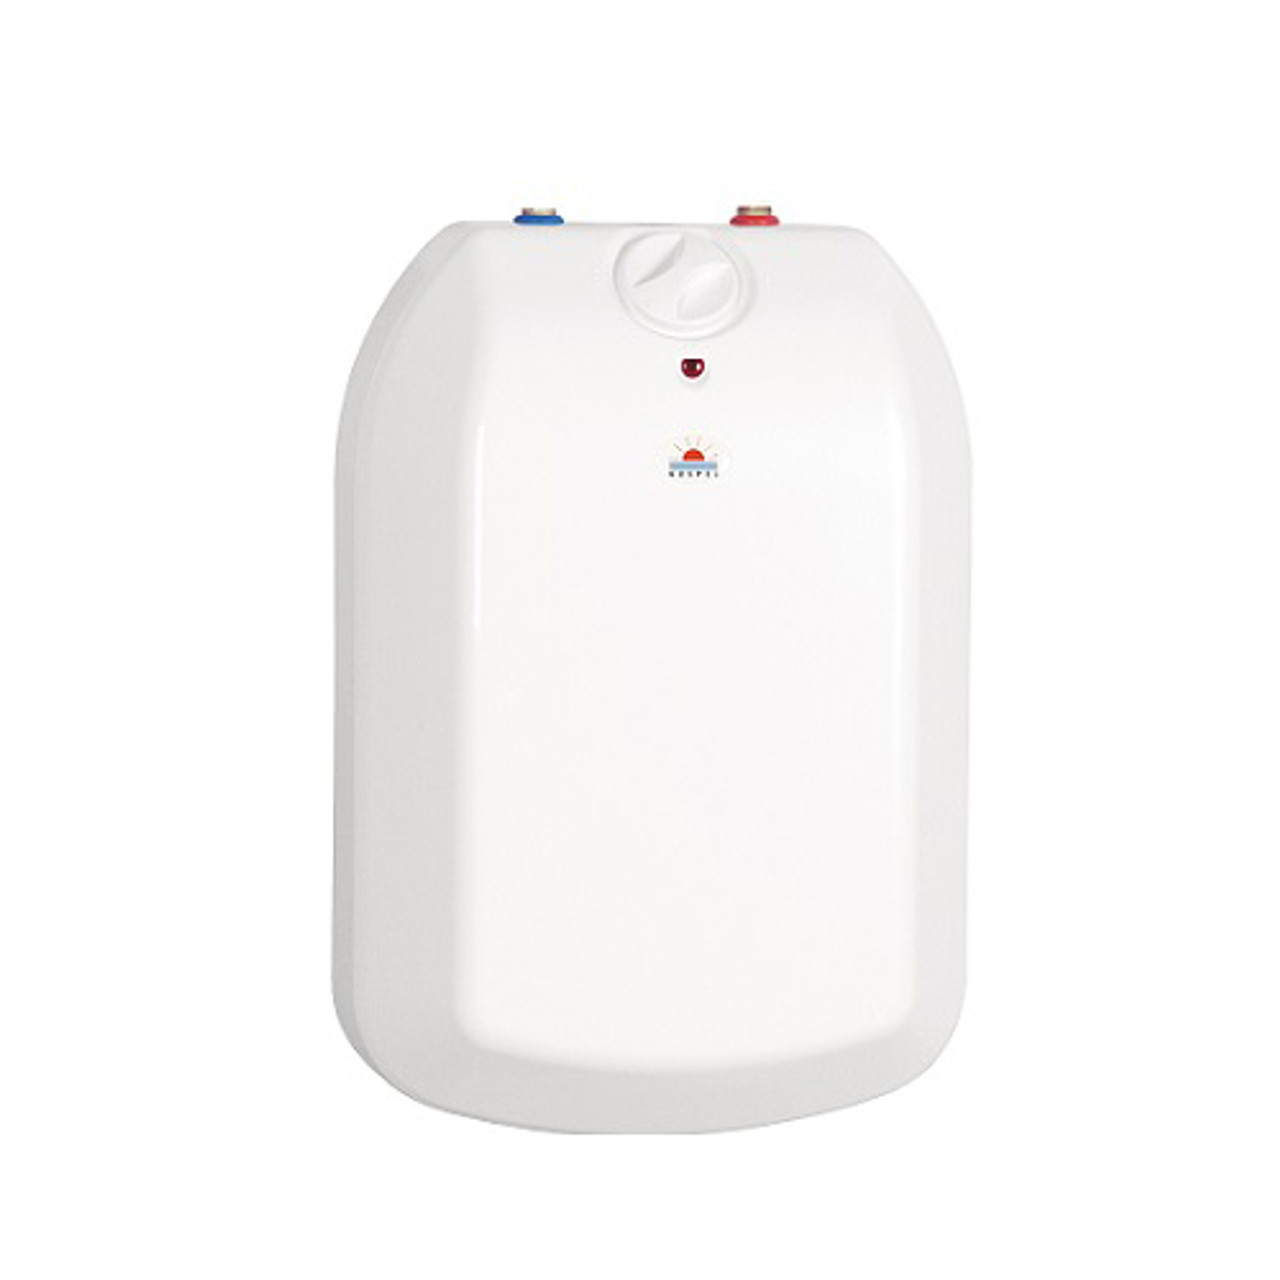 Under Sink Electric Kitchen Hot Water Heater 5l Capacity